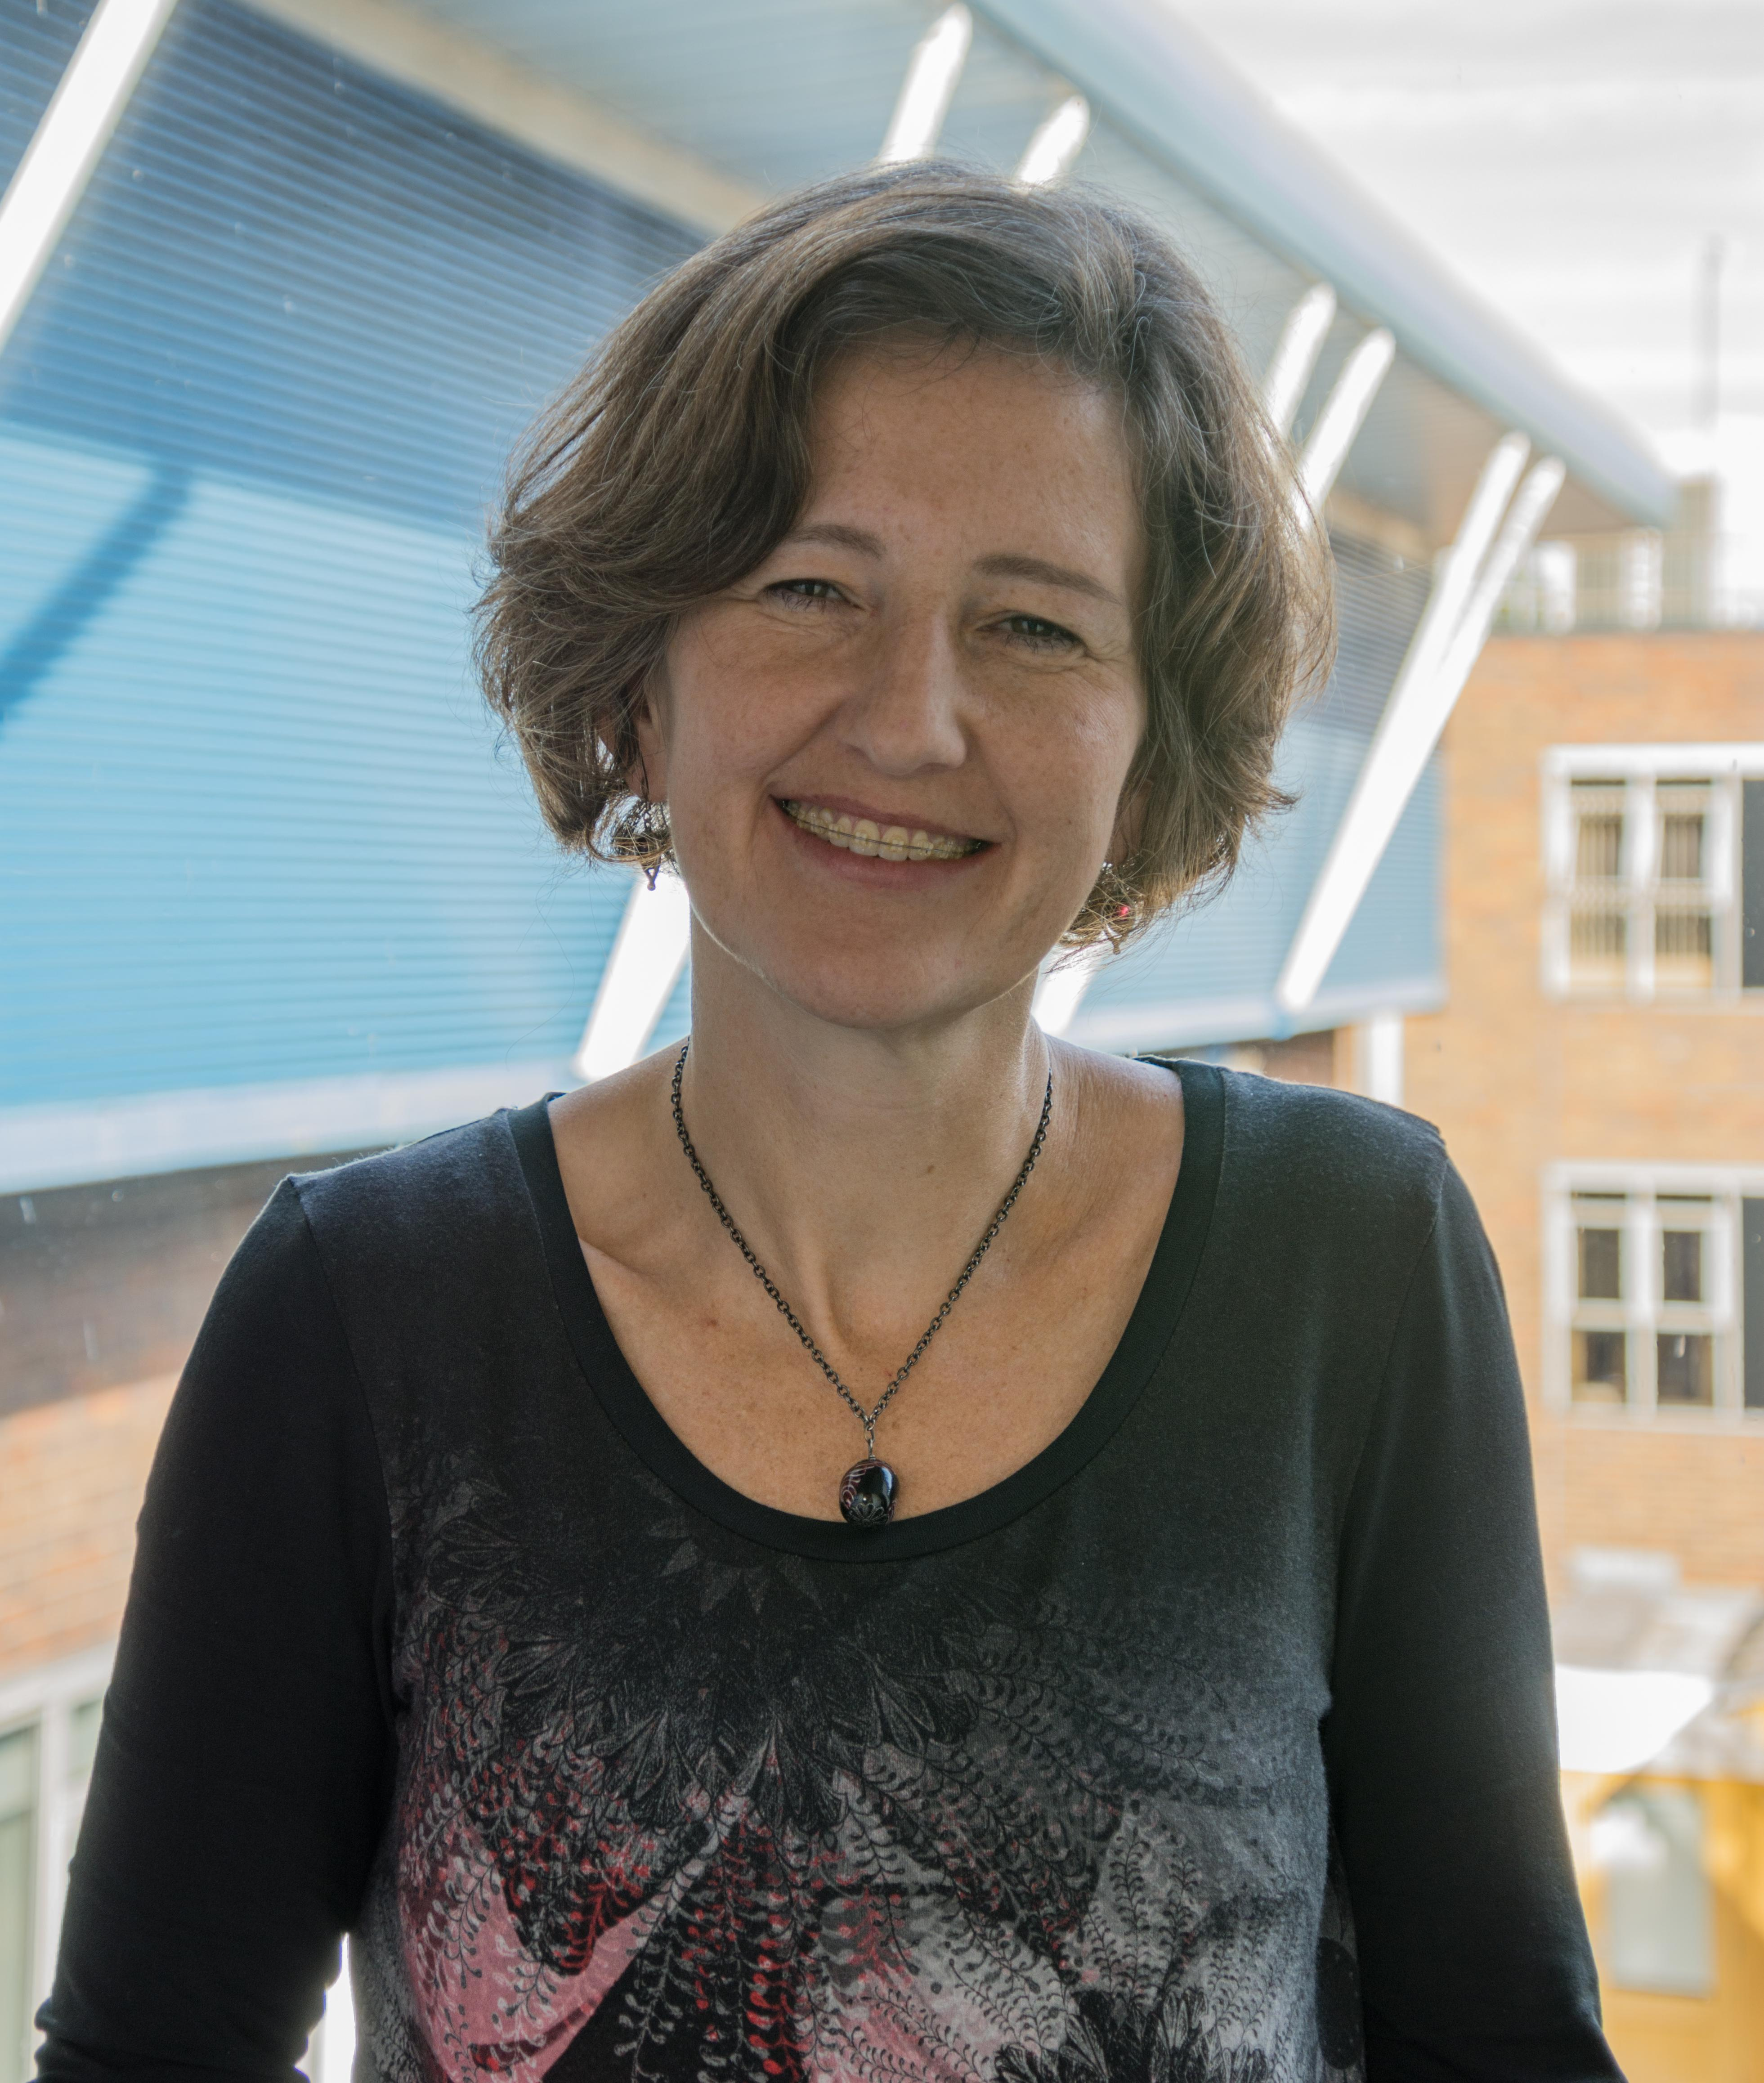 Blog: Guest Blog on Sustainable Buildings by Dr Alice Moncaster